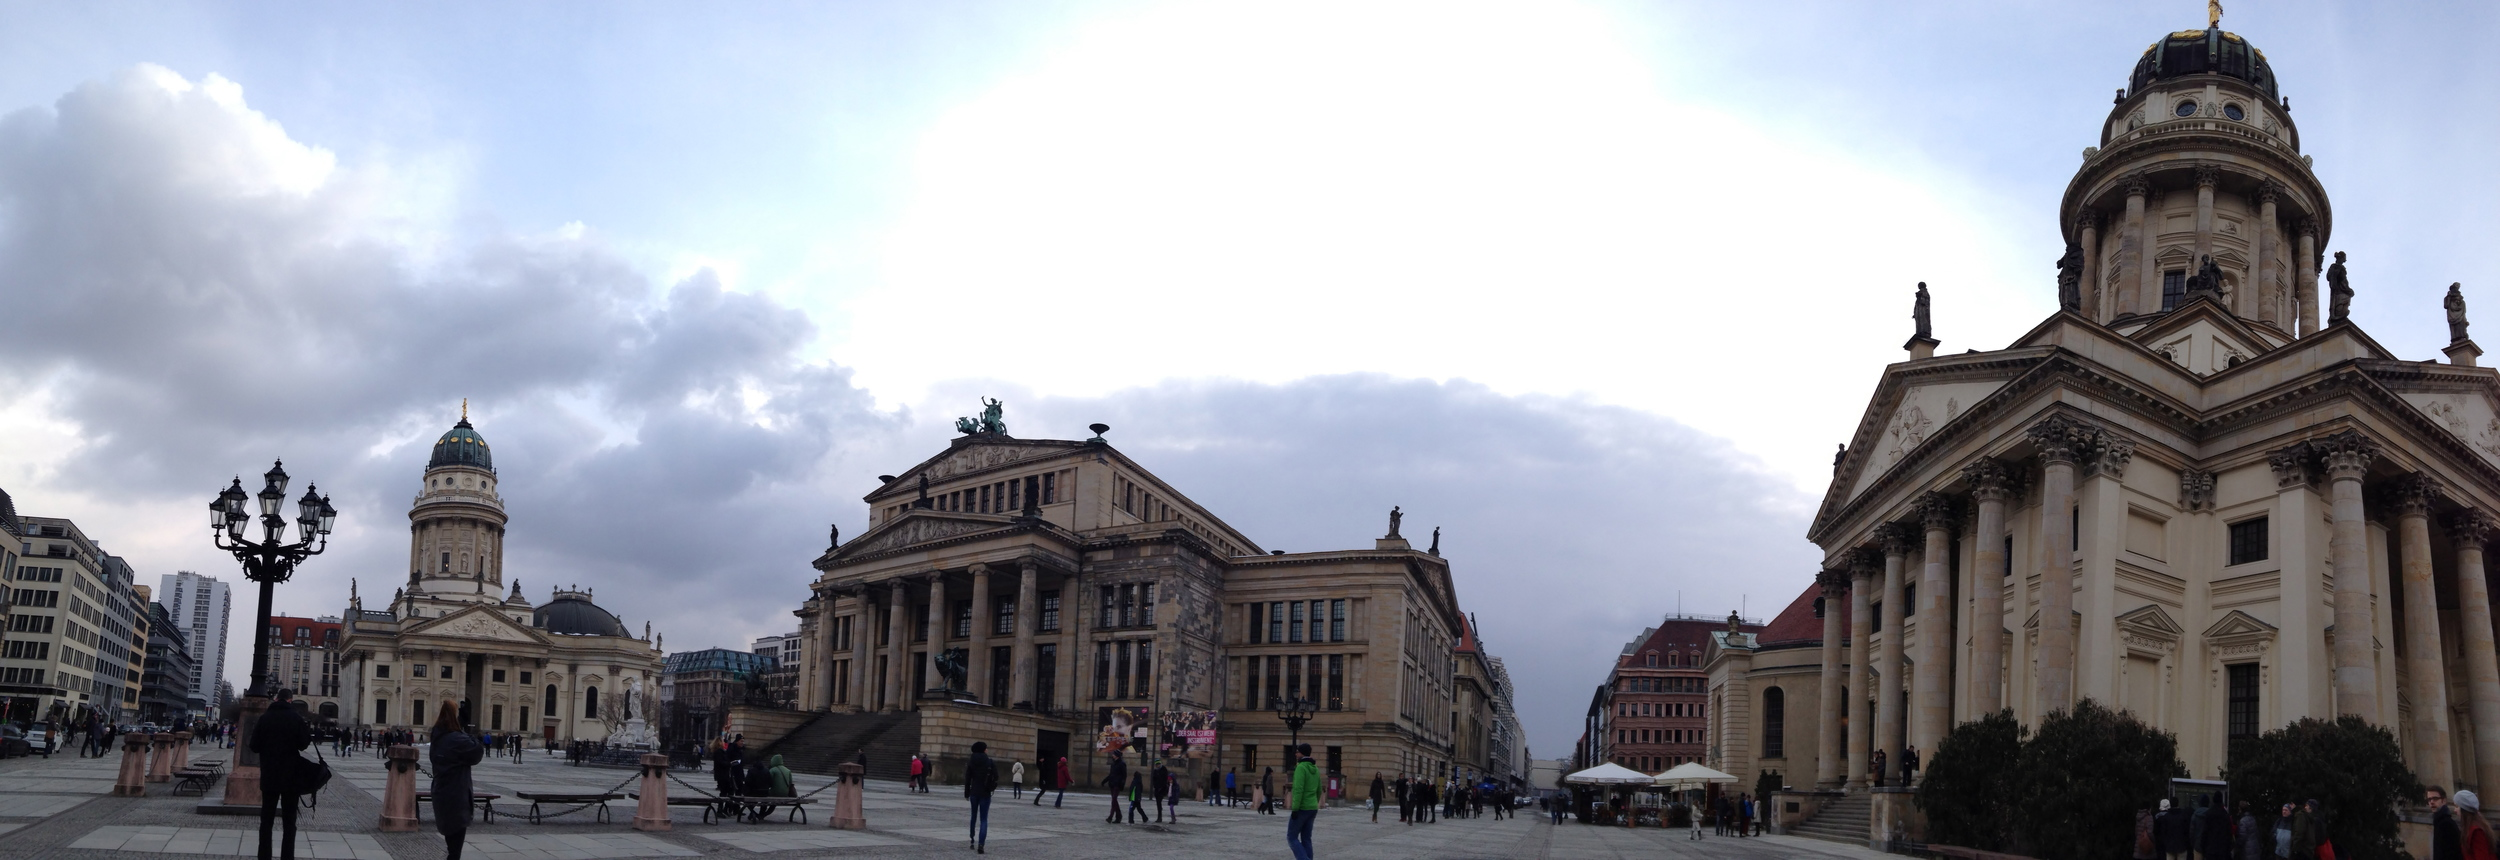 Gendarmenmarkt with the Neue Kirche (left), Konzerthaus (center), and Französiche Friedrichstadtkirche (right)